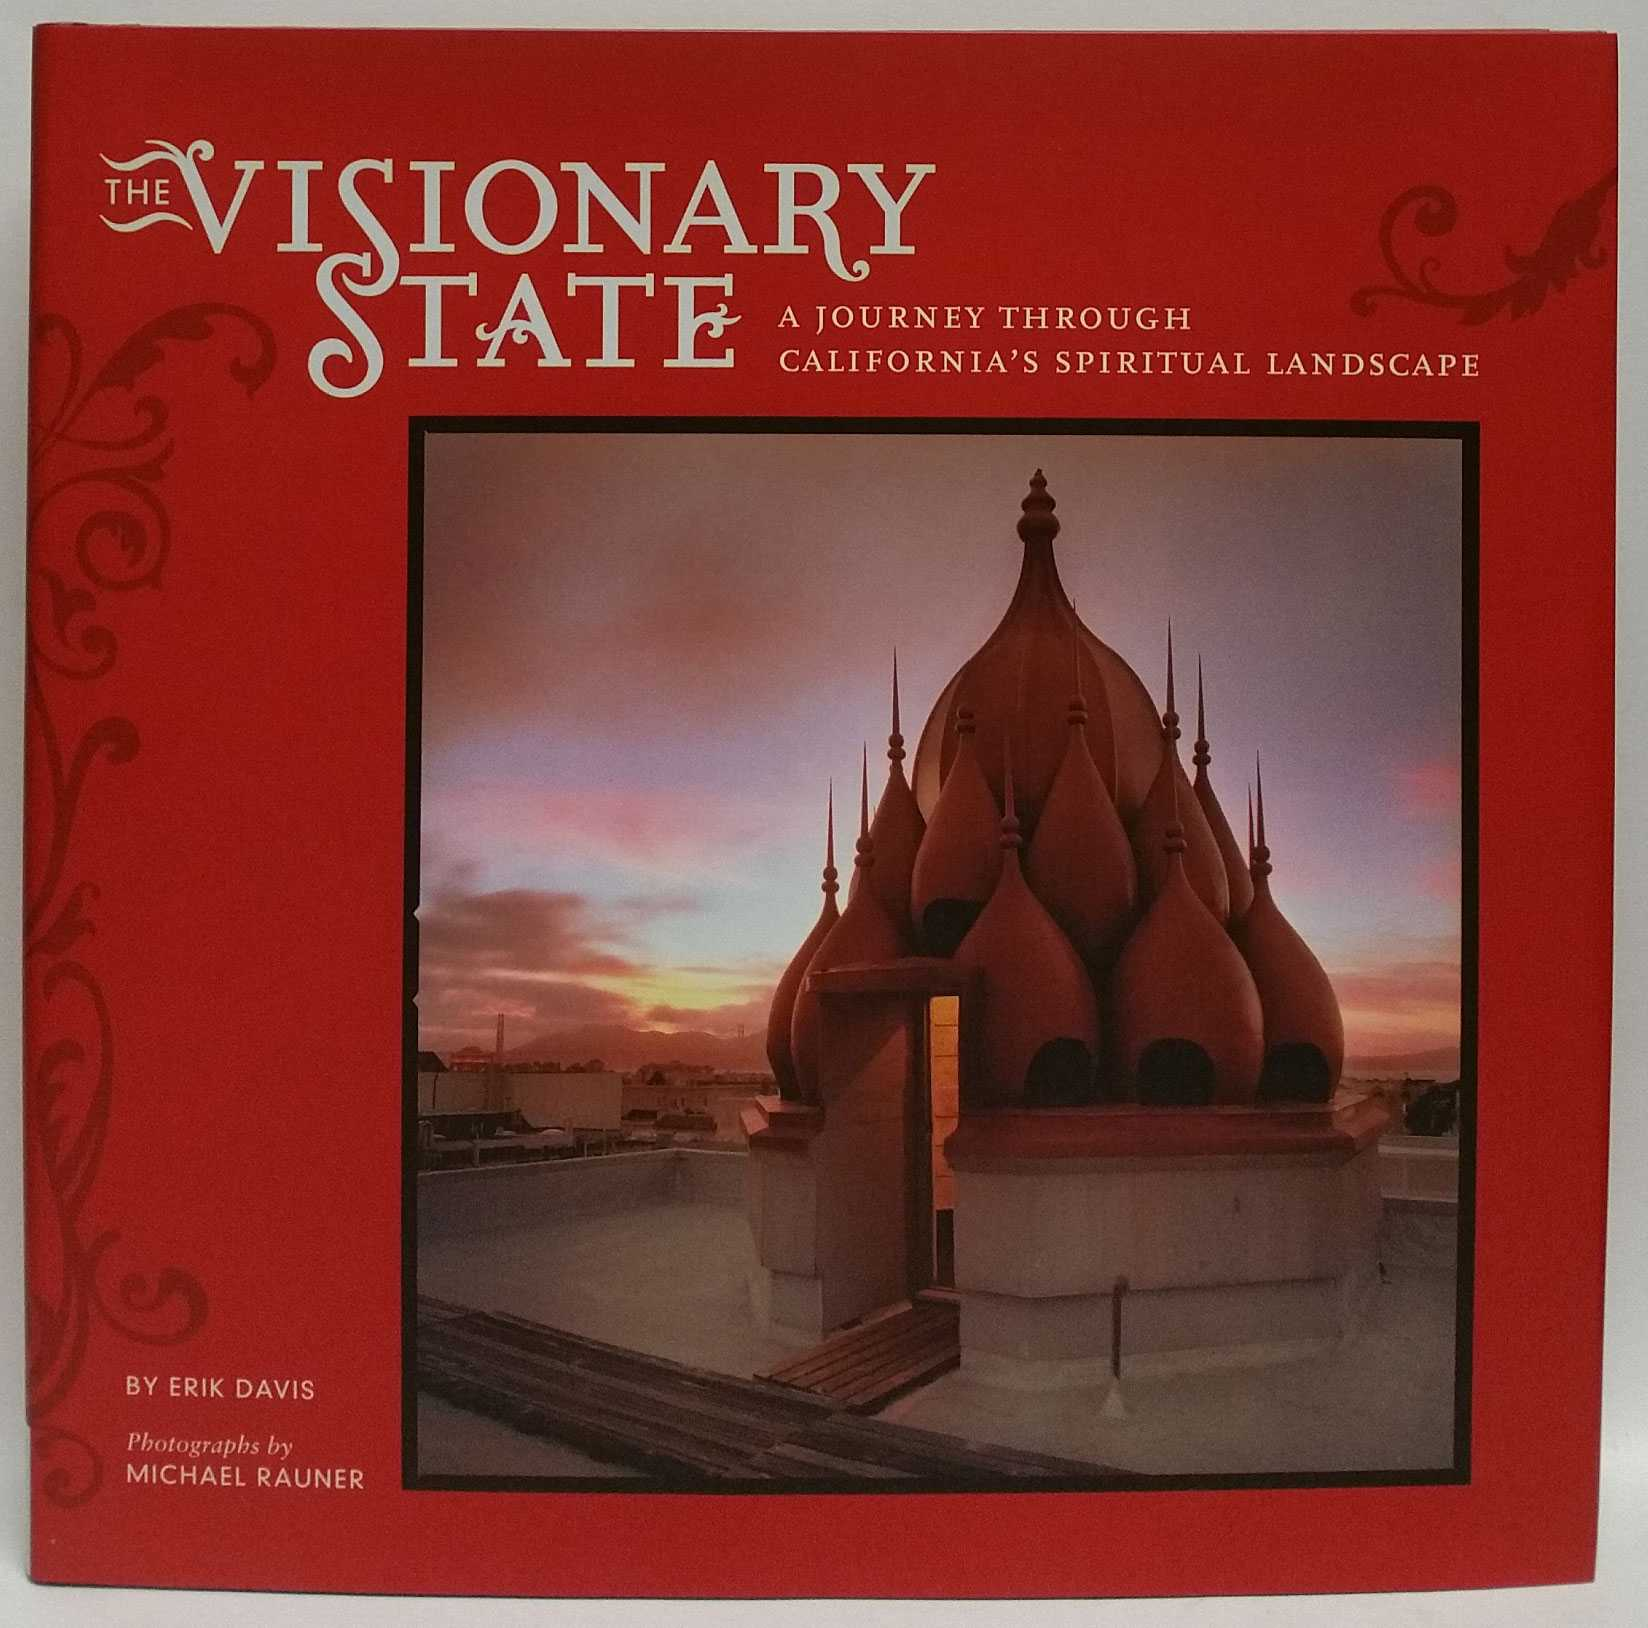 The Visionary State: A Journey Through California's Spiritual Landscape, Erik Davis